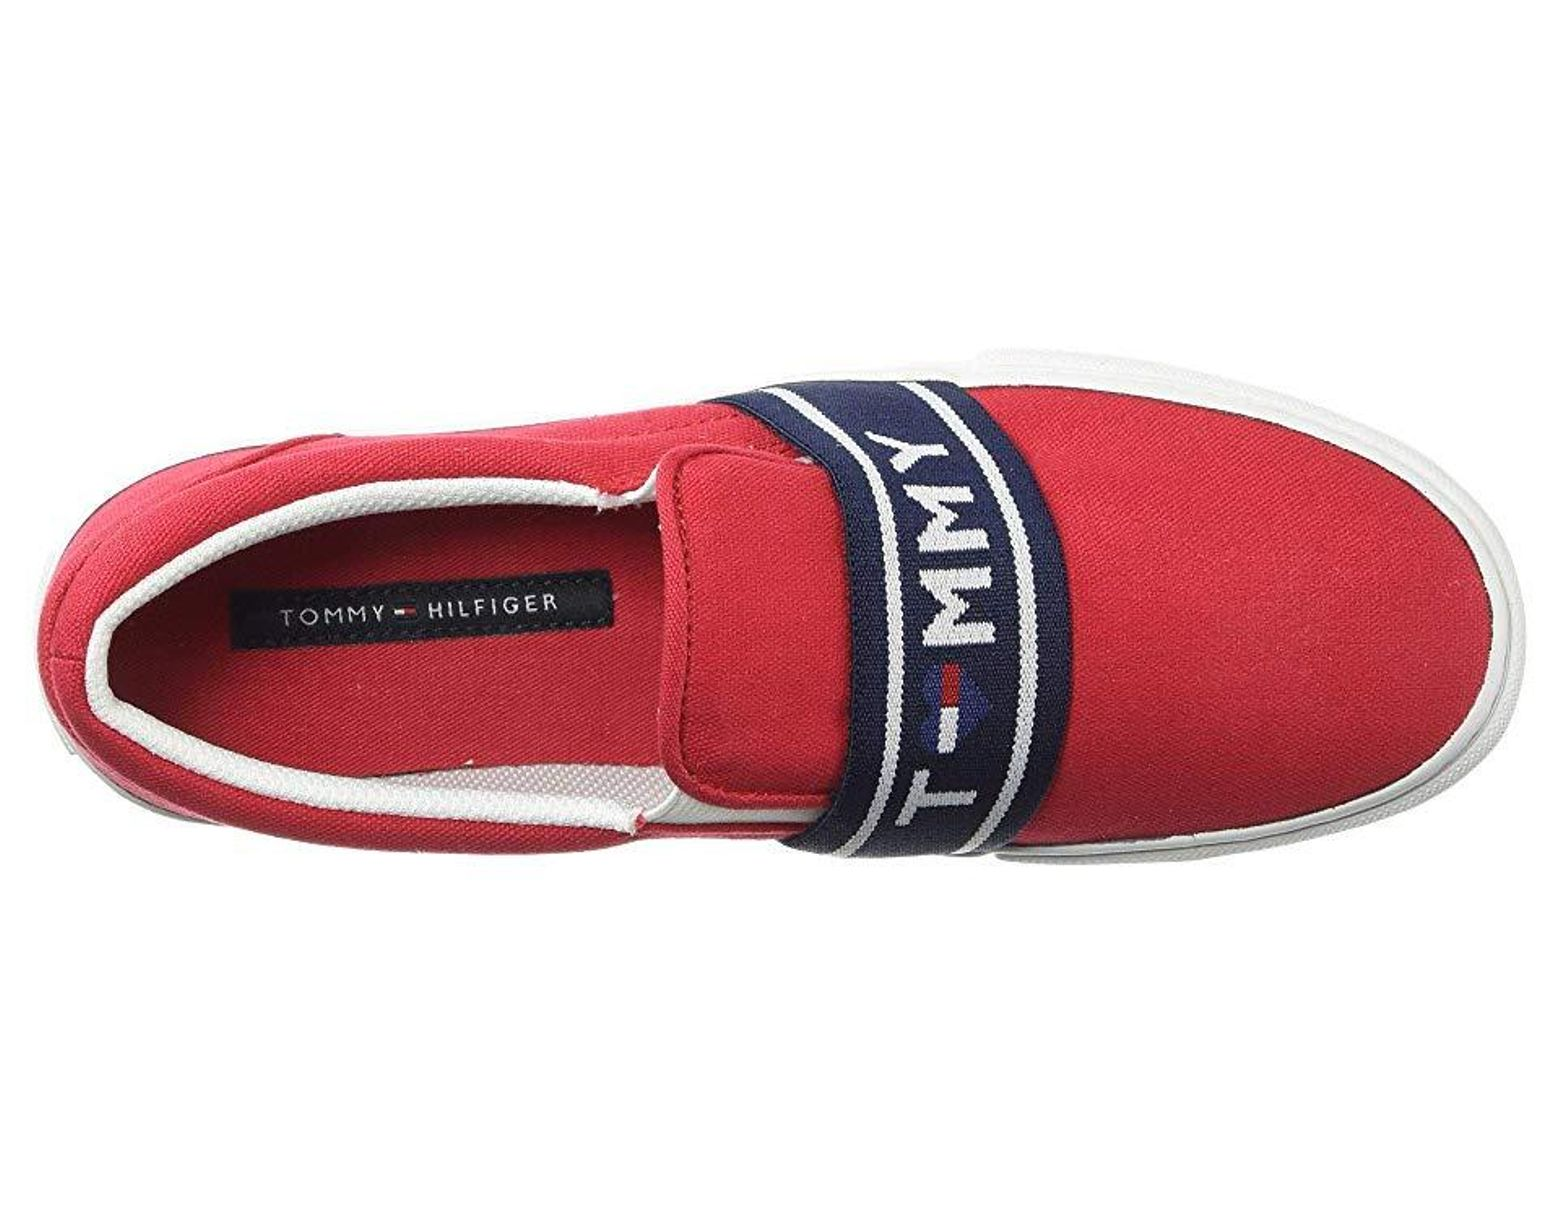 4dde612e Tommy Hilfiger Lourena 2 (red) Shoes in Red - Save 59% - Lyst